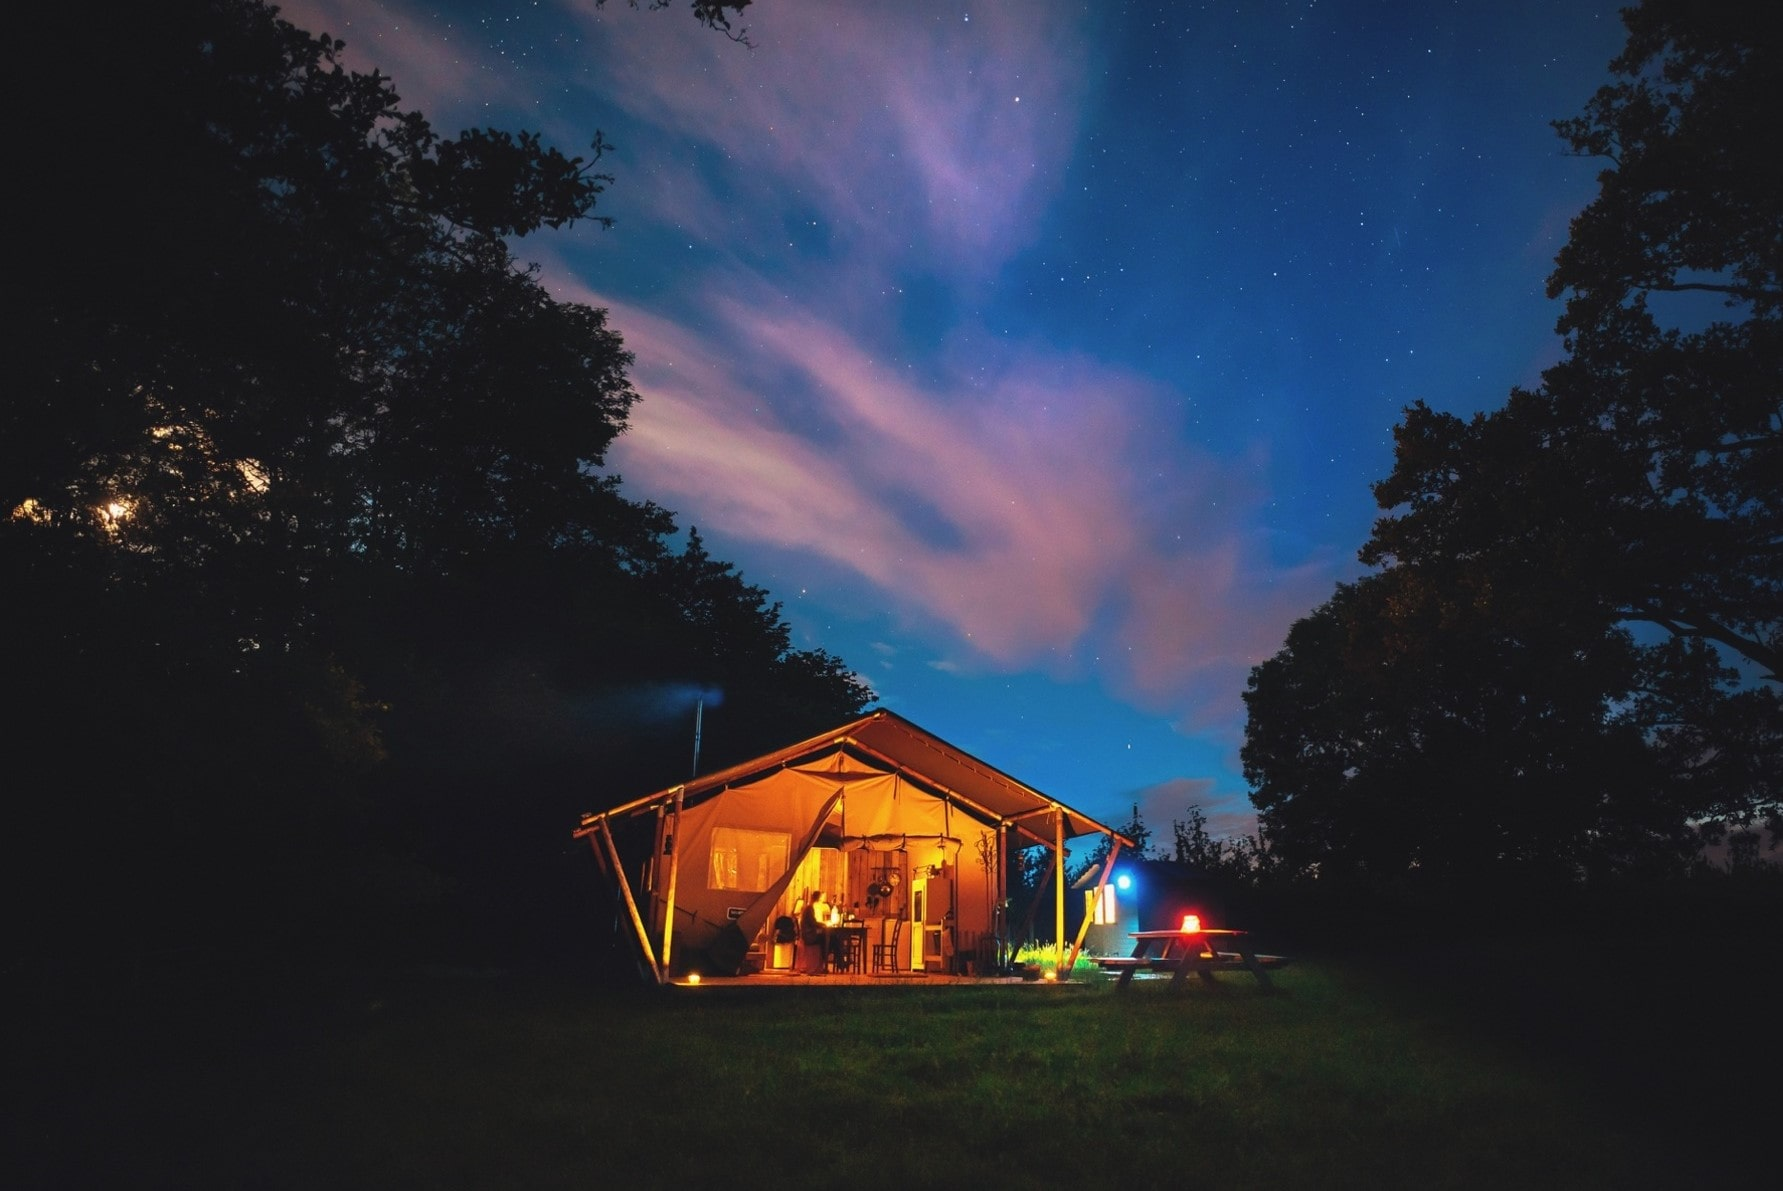 maddle-brook-safari-tent-in-field-lit-up-at-night-glamping-herefordshire